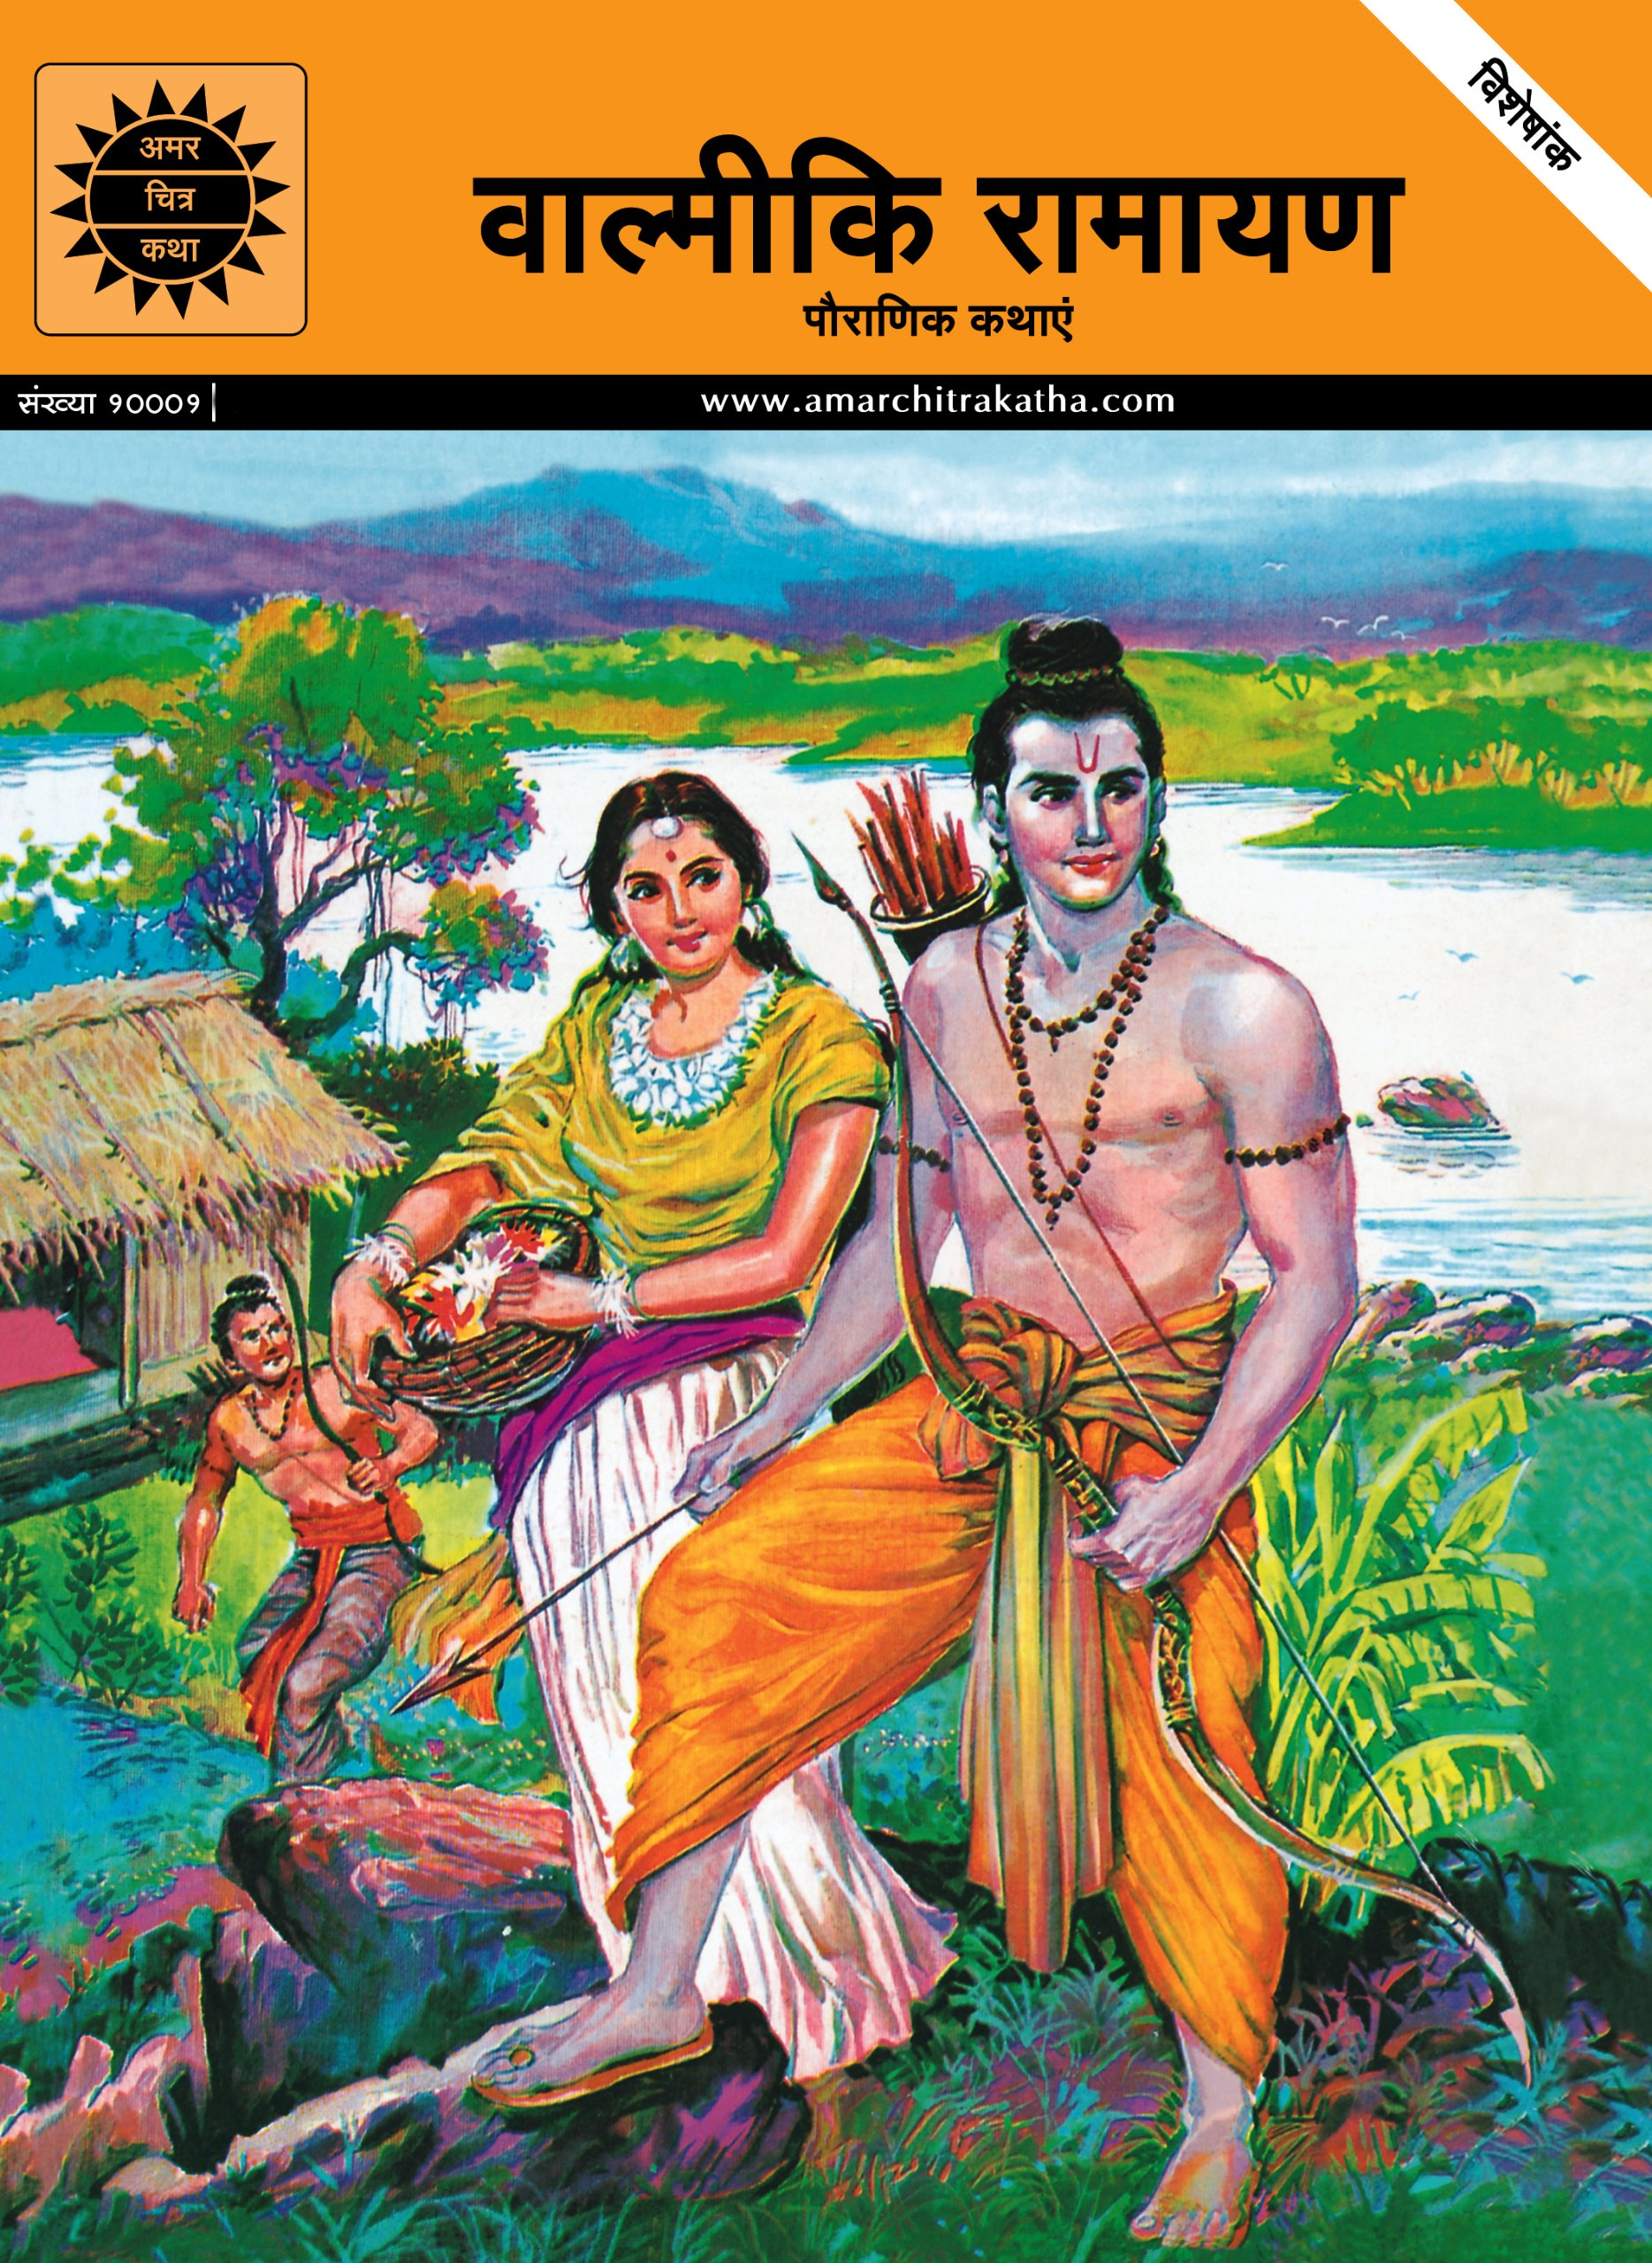 Madhu Mantena to produce Rs 600 crore Ramayana, billed as India's